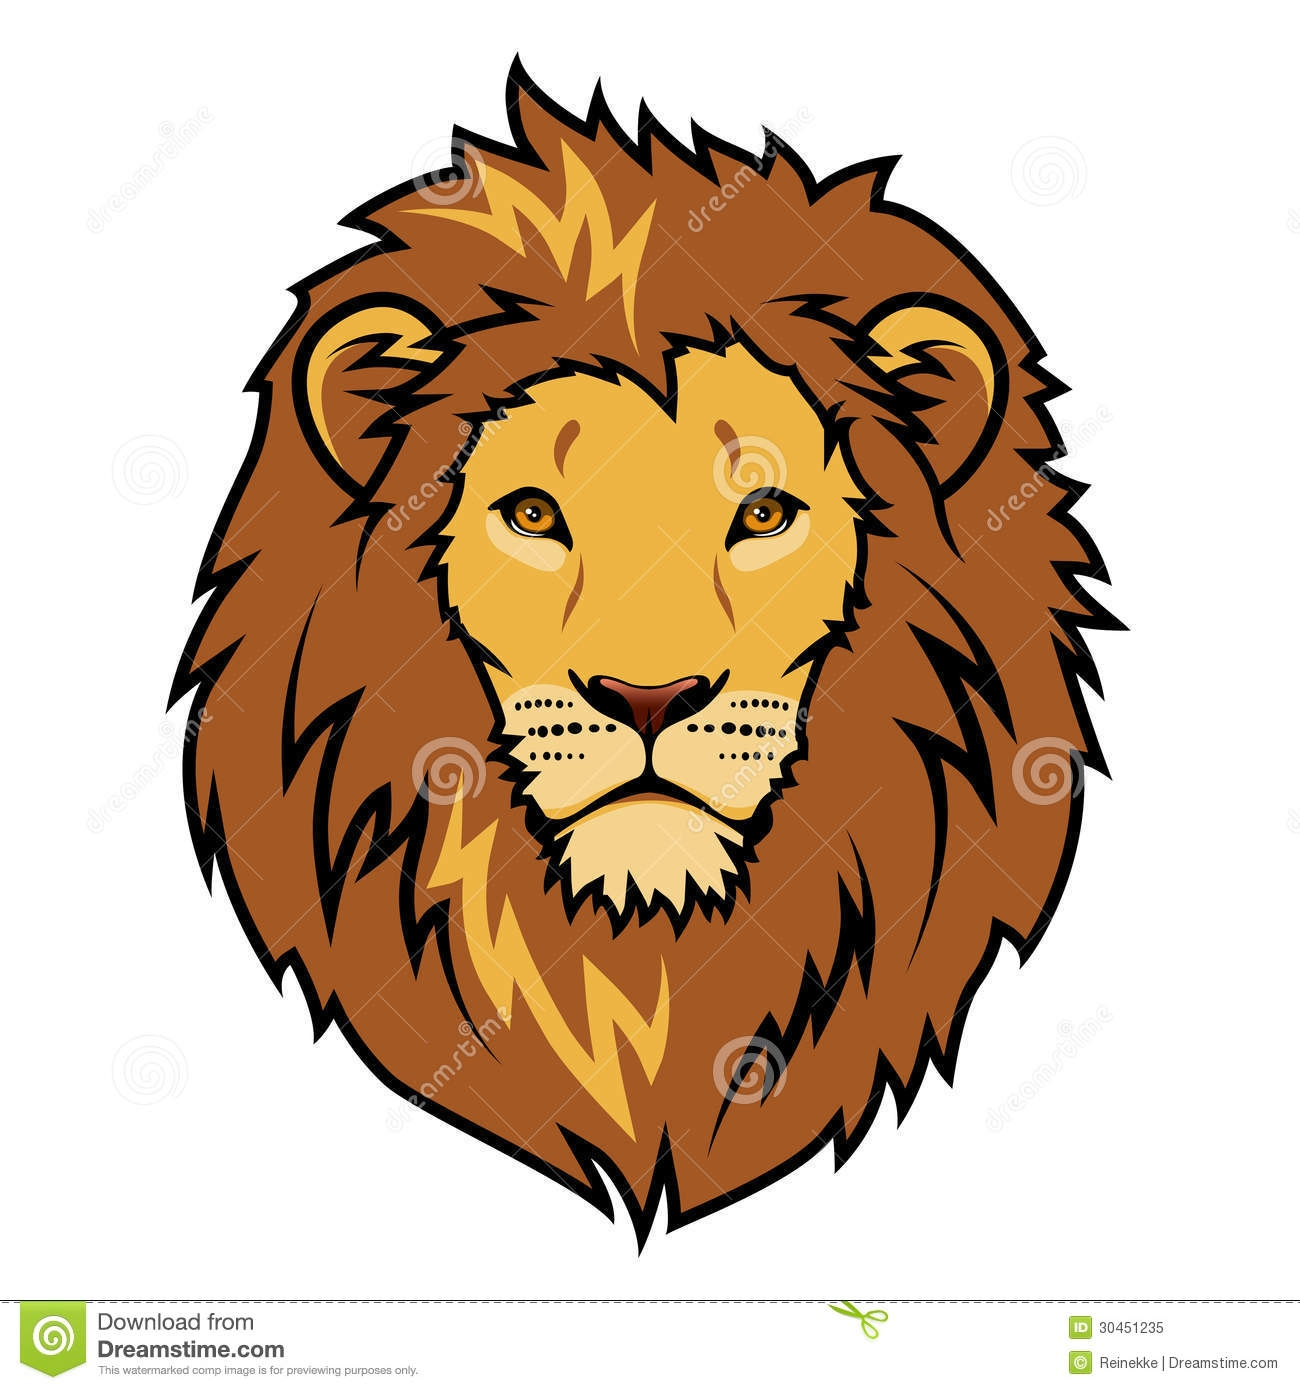 Lion head png Transparent pictures on F.